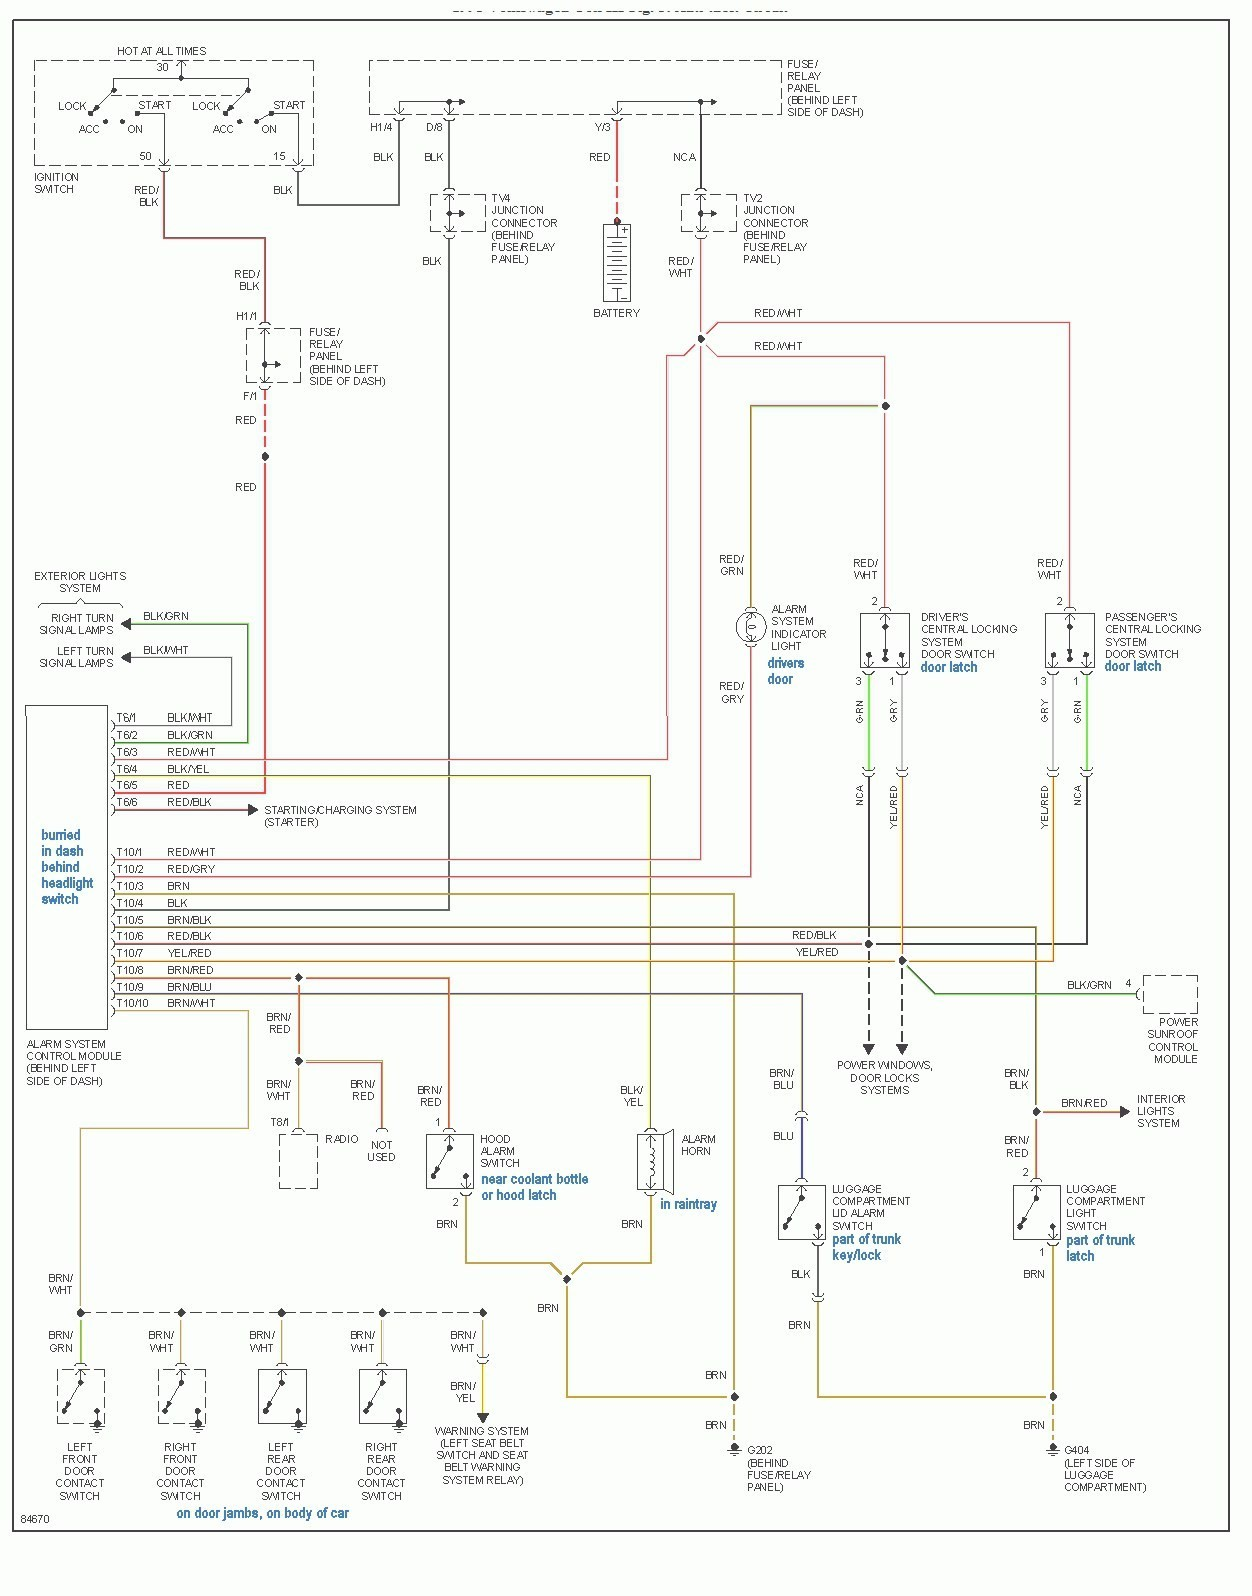 DIAGRAM] 84 Vw Jetta Wiring Diagram FULL Version HD Quality Wiring Diagram  - SUNDIAGRAM.LINEAKEBAP.ITsundiagram.lineakebap.it